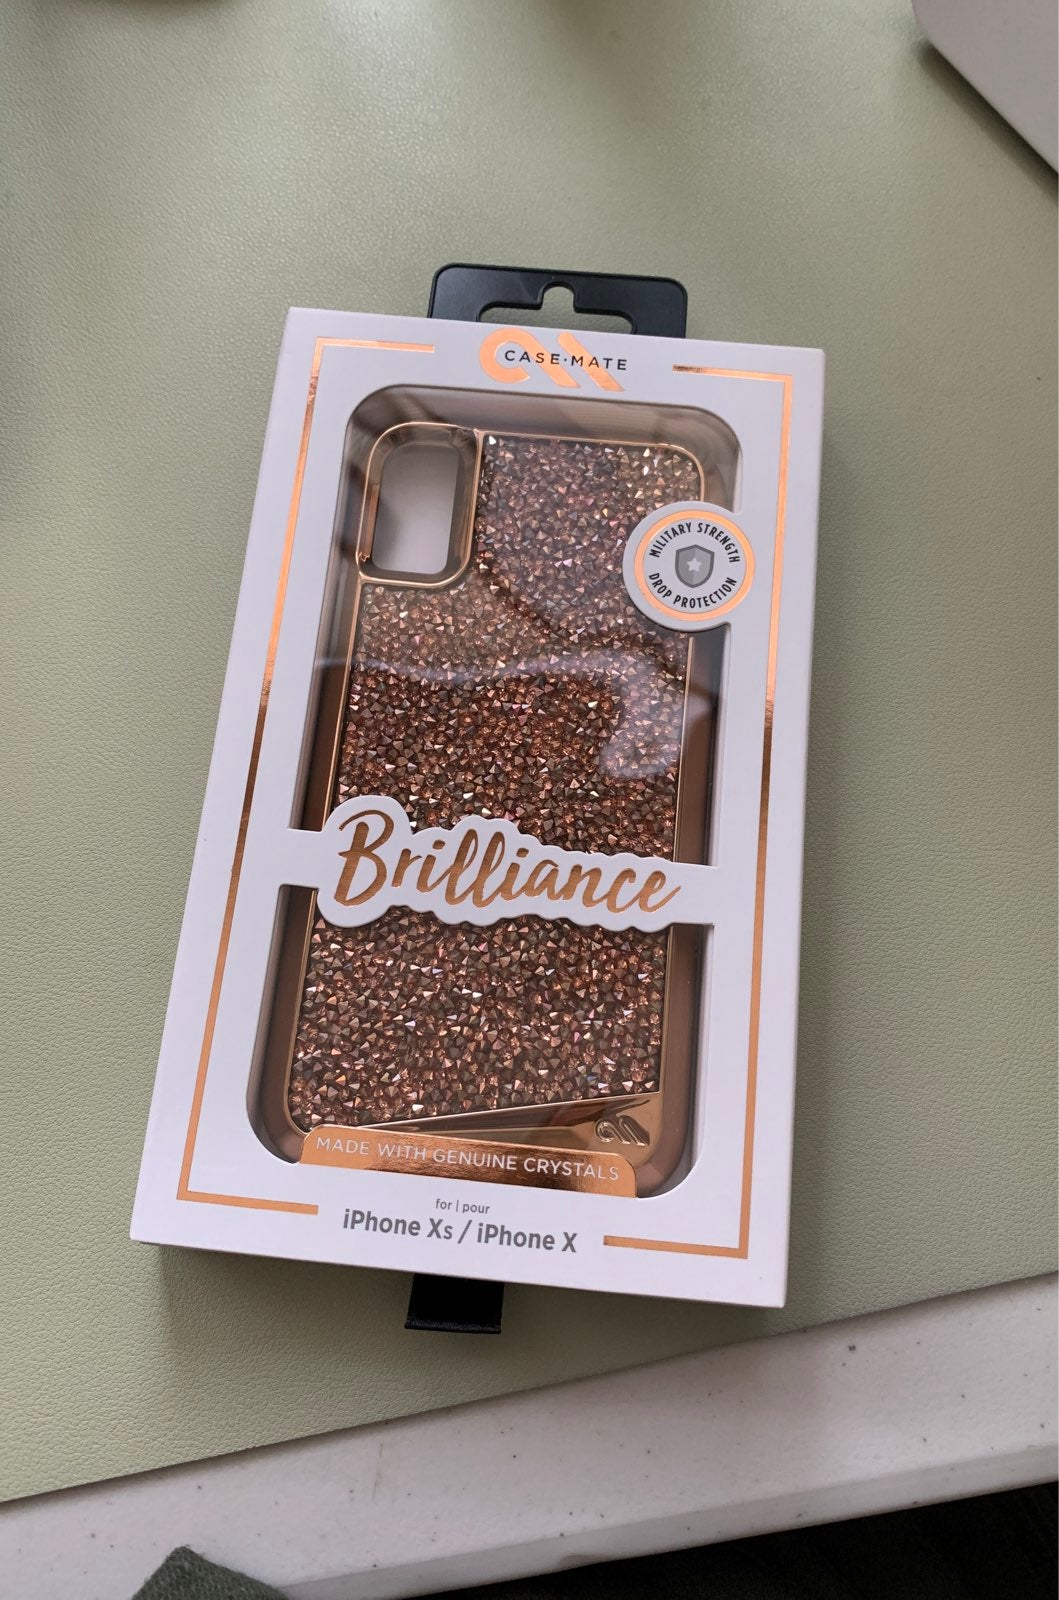 Casemate Brilliance iPhone X/XS NIB